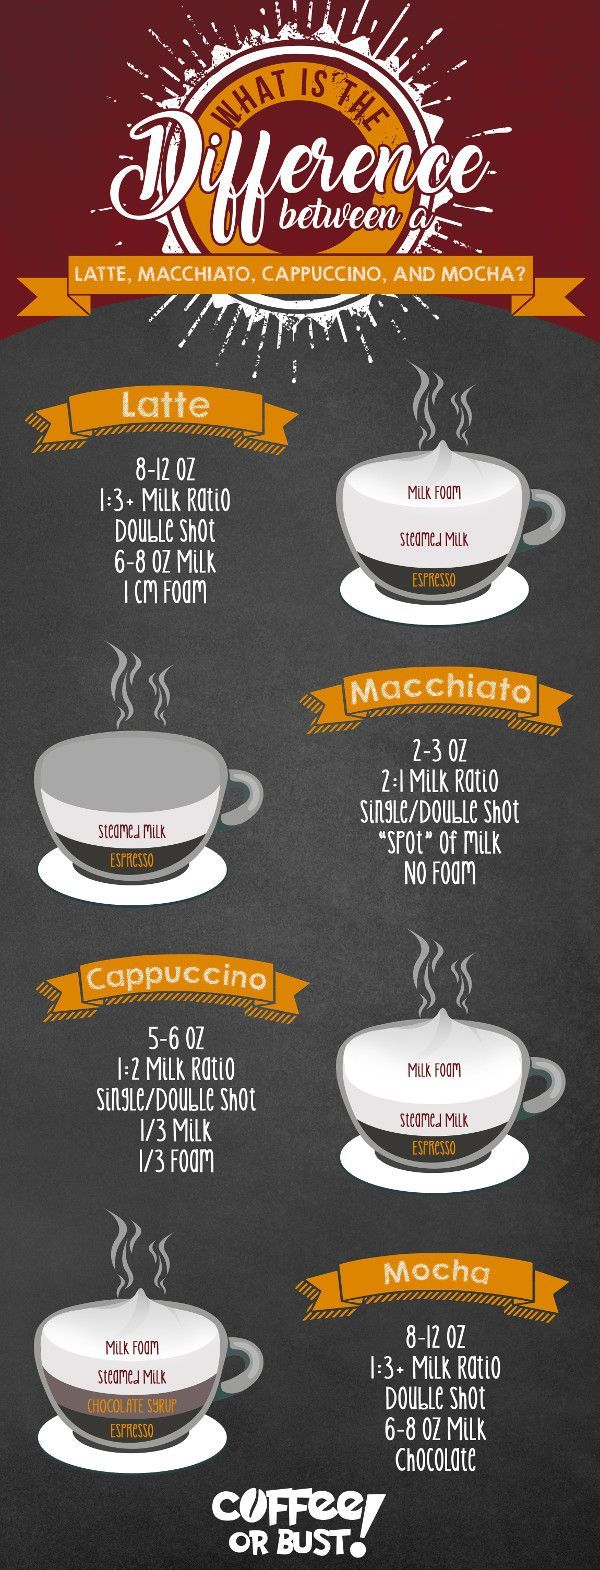 Latte, Macchiatto, Cappucino & Mocha Whats The Difference